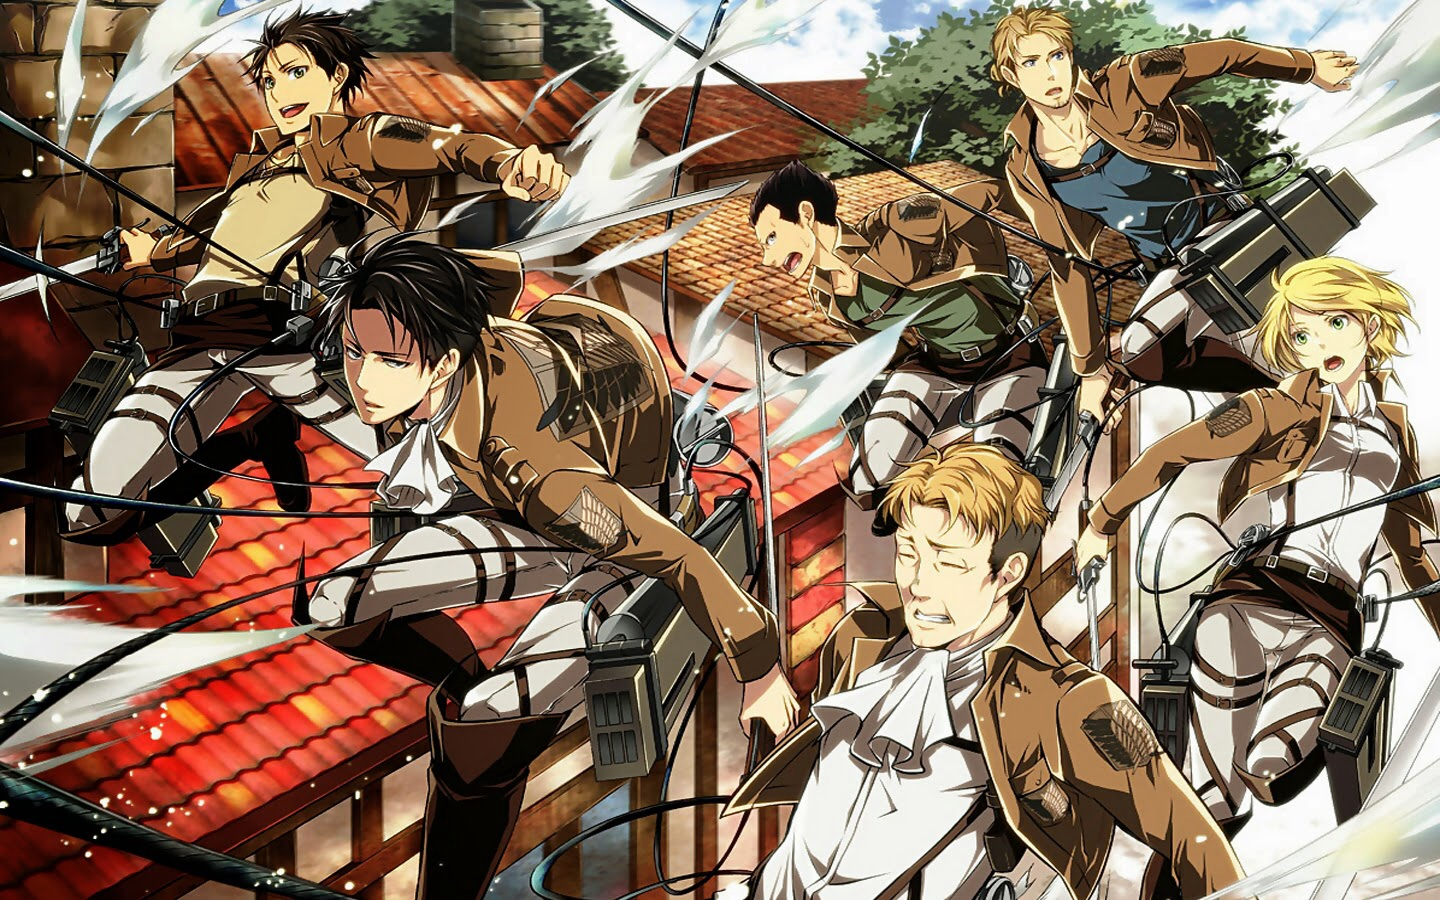 Levi Squad Shingeki No Kyojin Attack On Titan Wallpaper Levi 21071 Hd Wallpaper Backgrounds Download